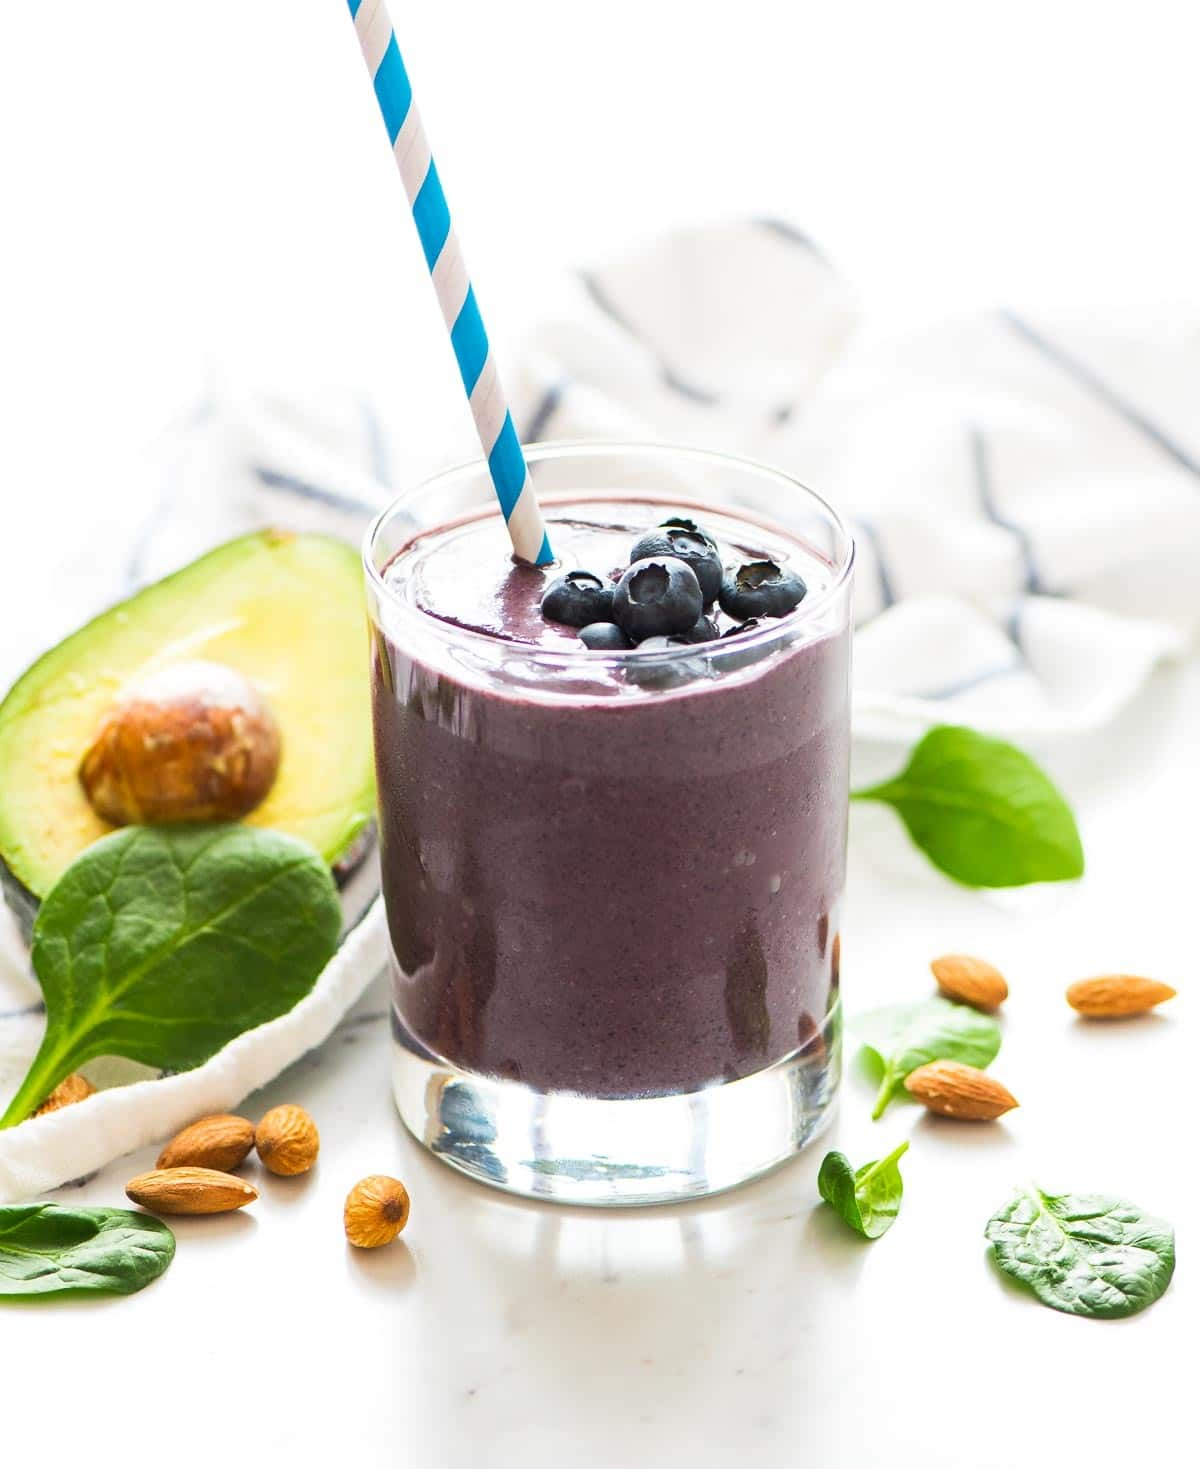 Blueberry Avocado Banana Smoothie – try this hydrating green smoothie for natural glowing skin! With healthy fats, antioxidants, and fiber, made for giving you your most beautiful skin yet. Recipe at wellplated.com | @wellplated